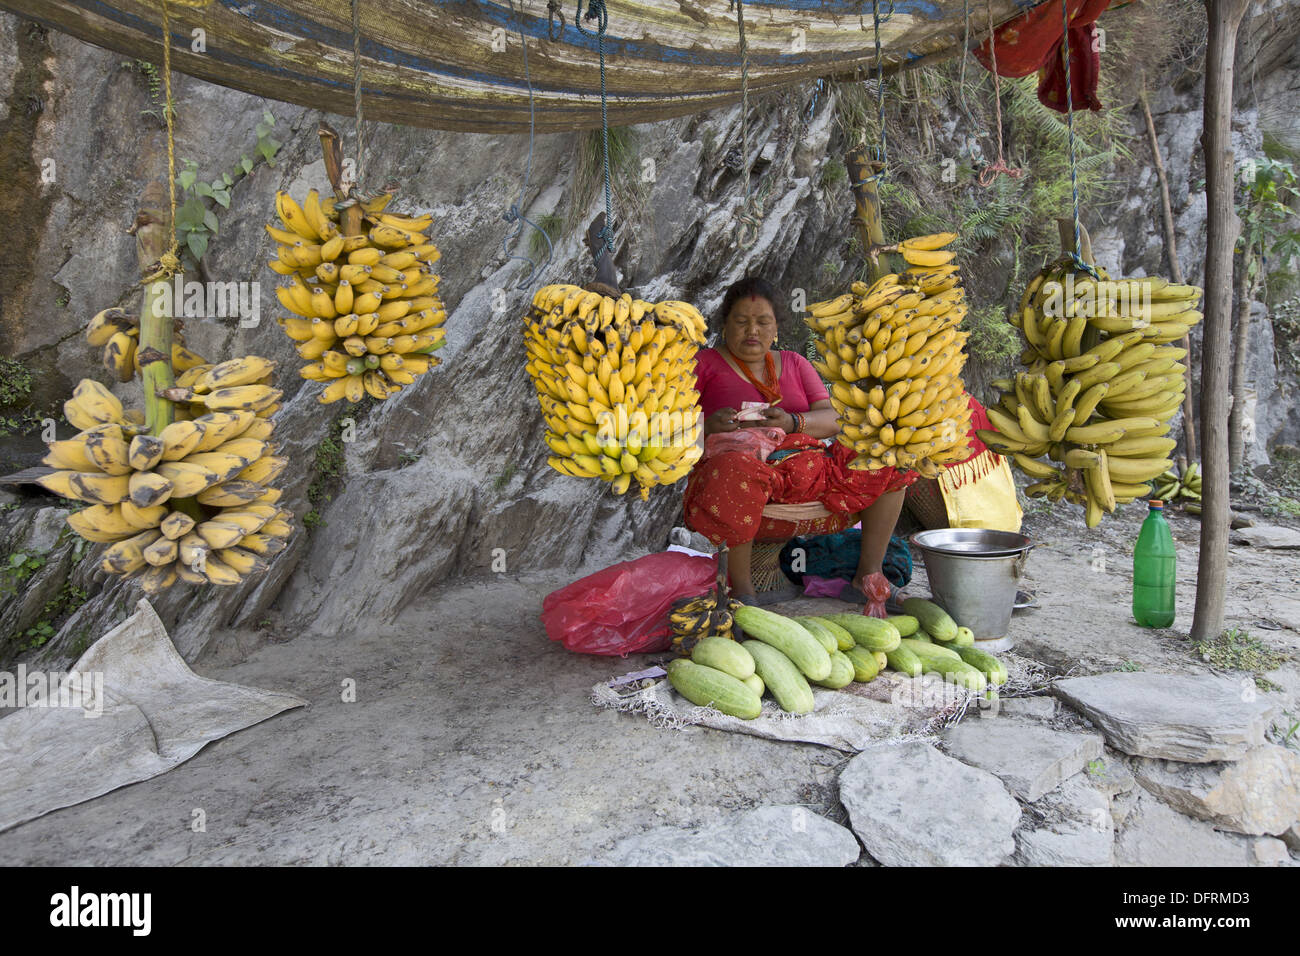 A lady street vendor selling fruits and vegetables, Nepal. - Stock Image